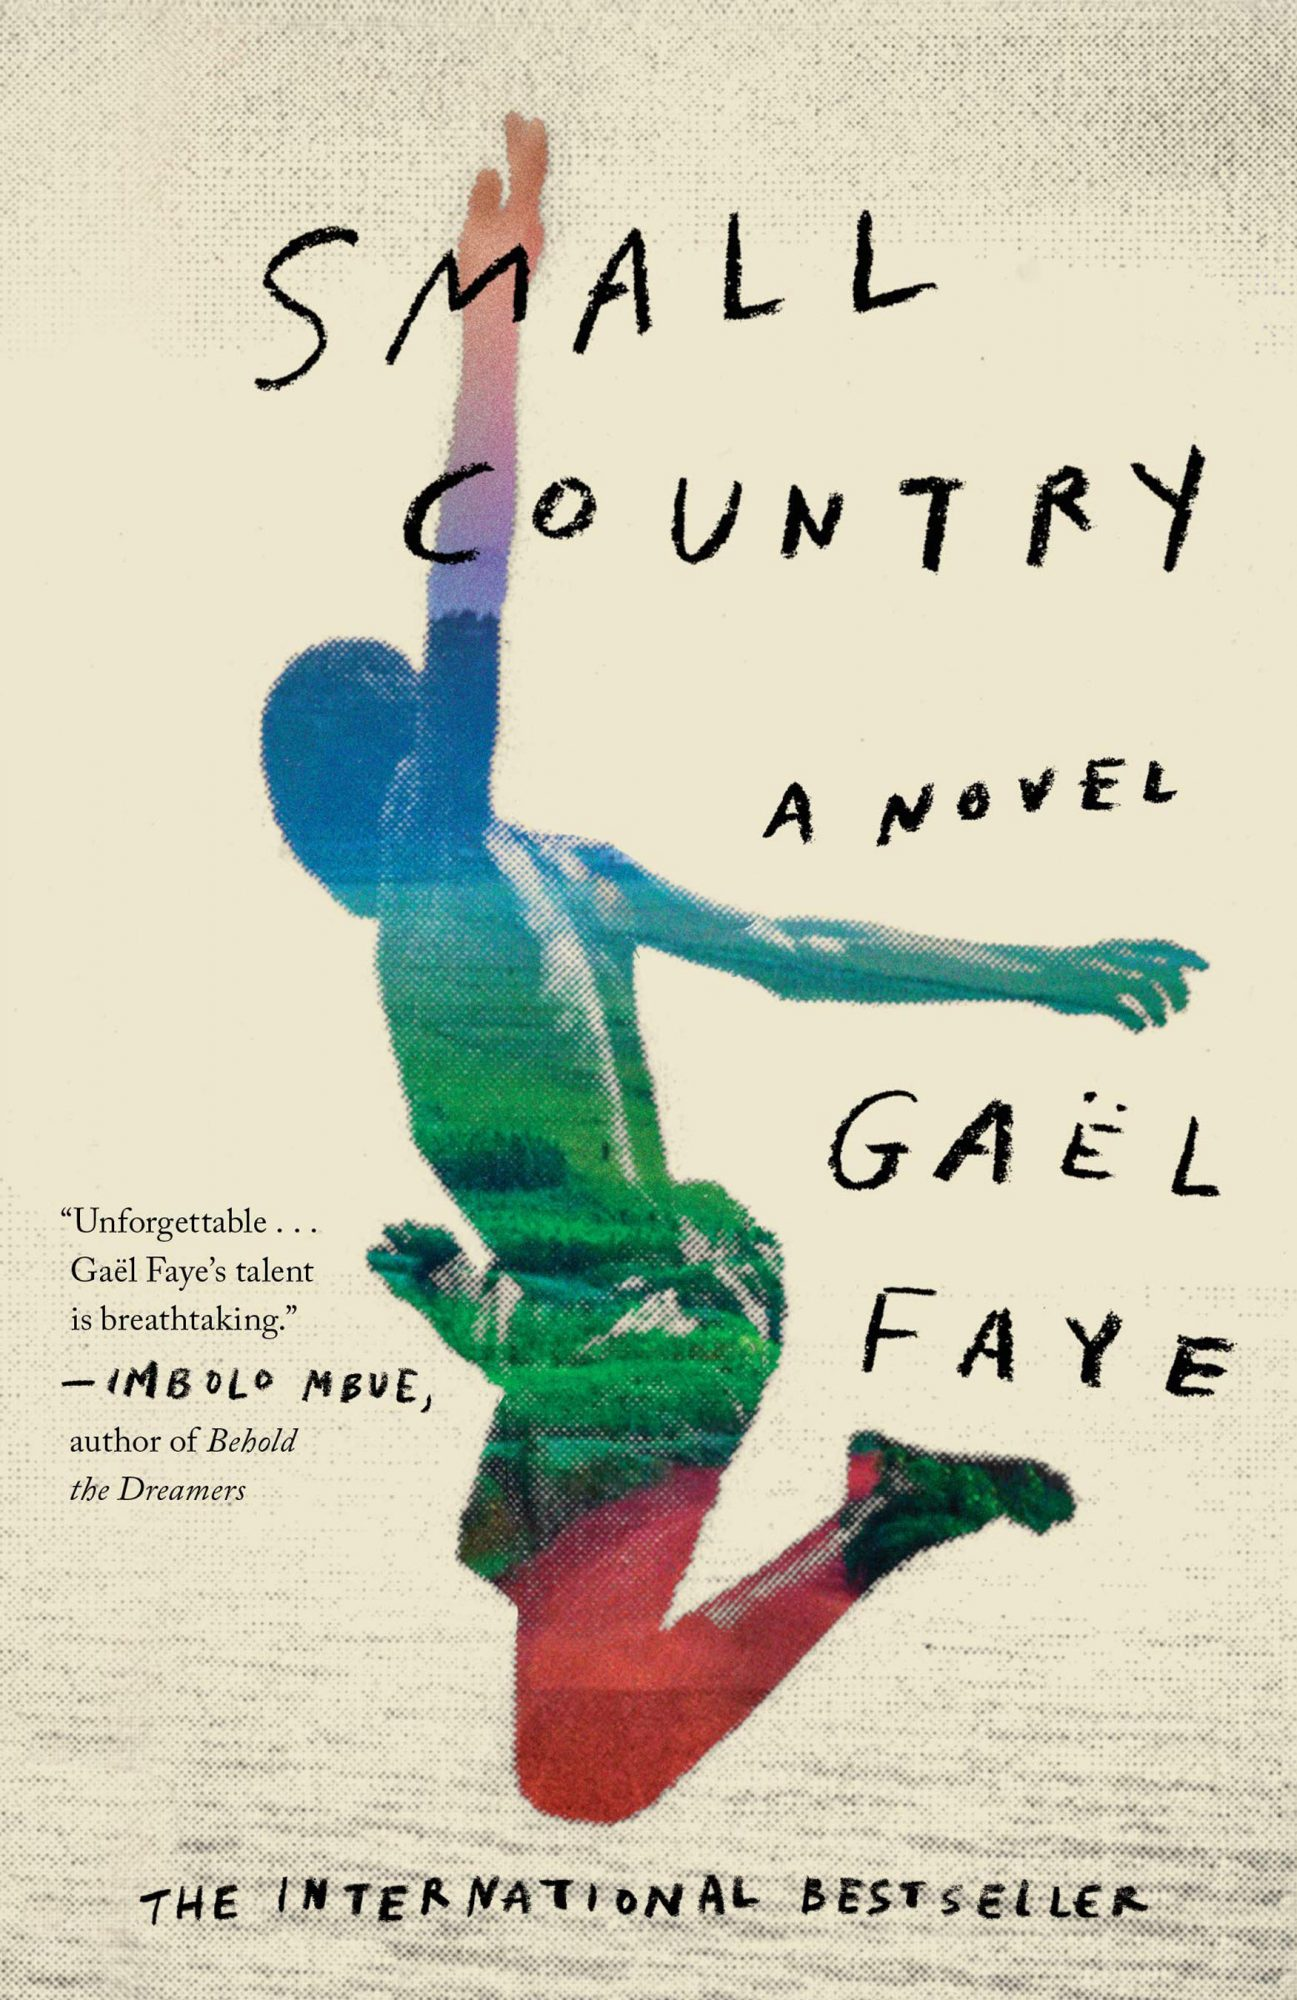 Small Country, by Gaël Faye